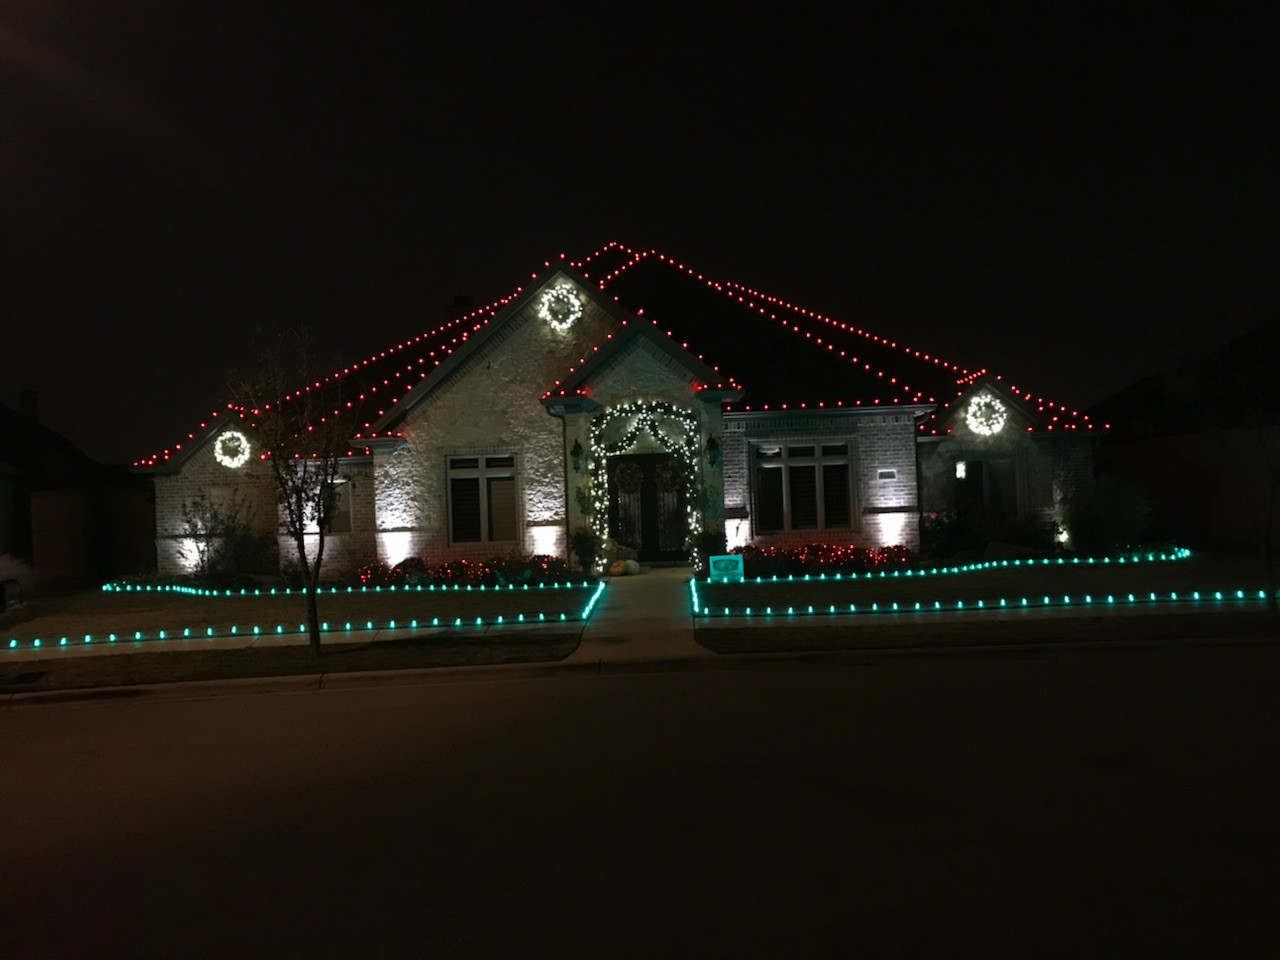 We Will Install Maintain Your Lights Take Down And Until Next Year Allow Us To Add A Little Sparkle Home This Holiday